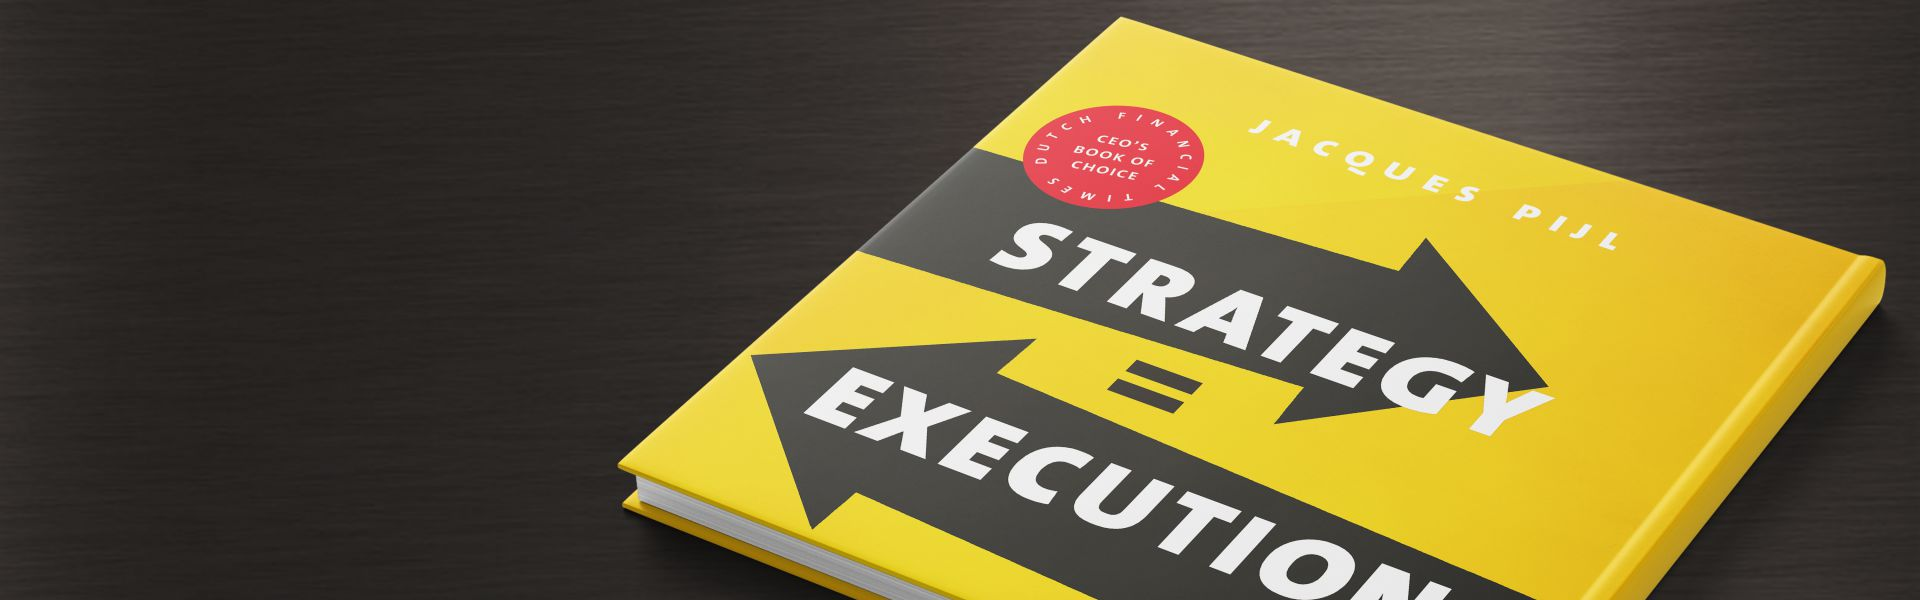 Strategy = Execution: Faster improvement, renewal and innovation in a new era